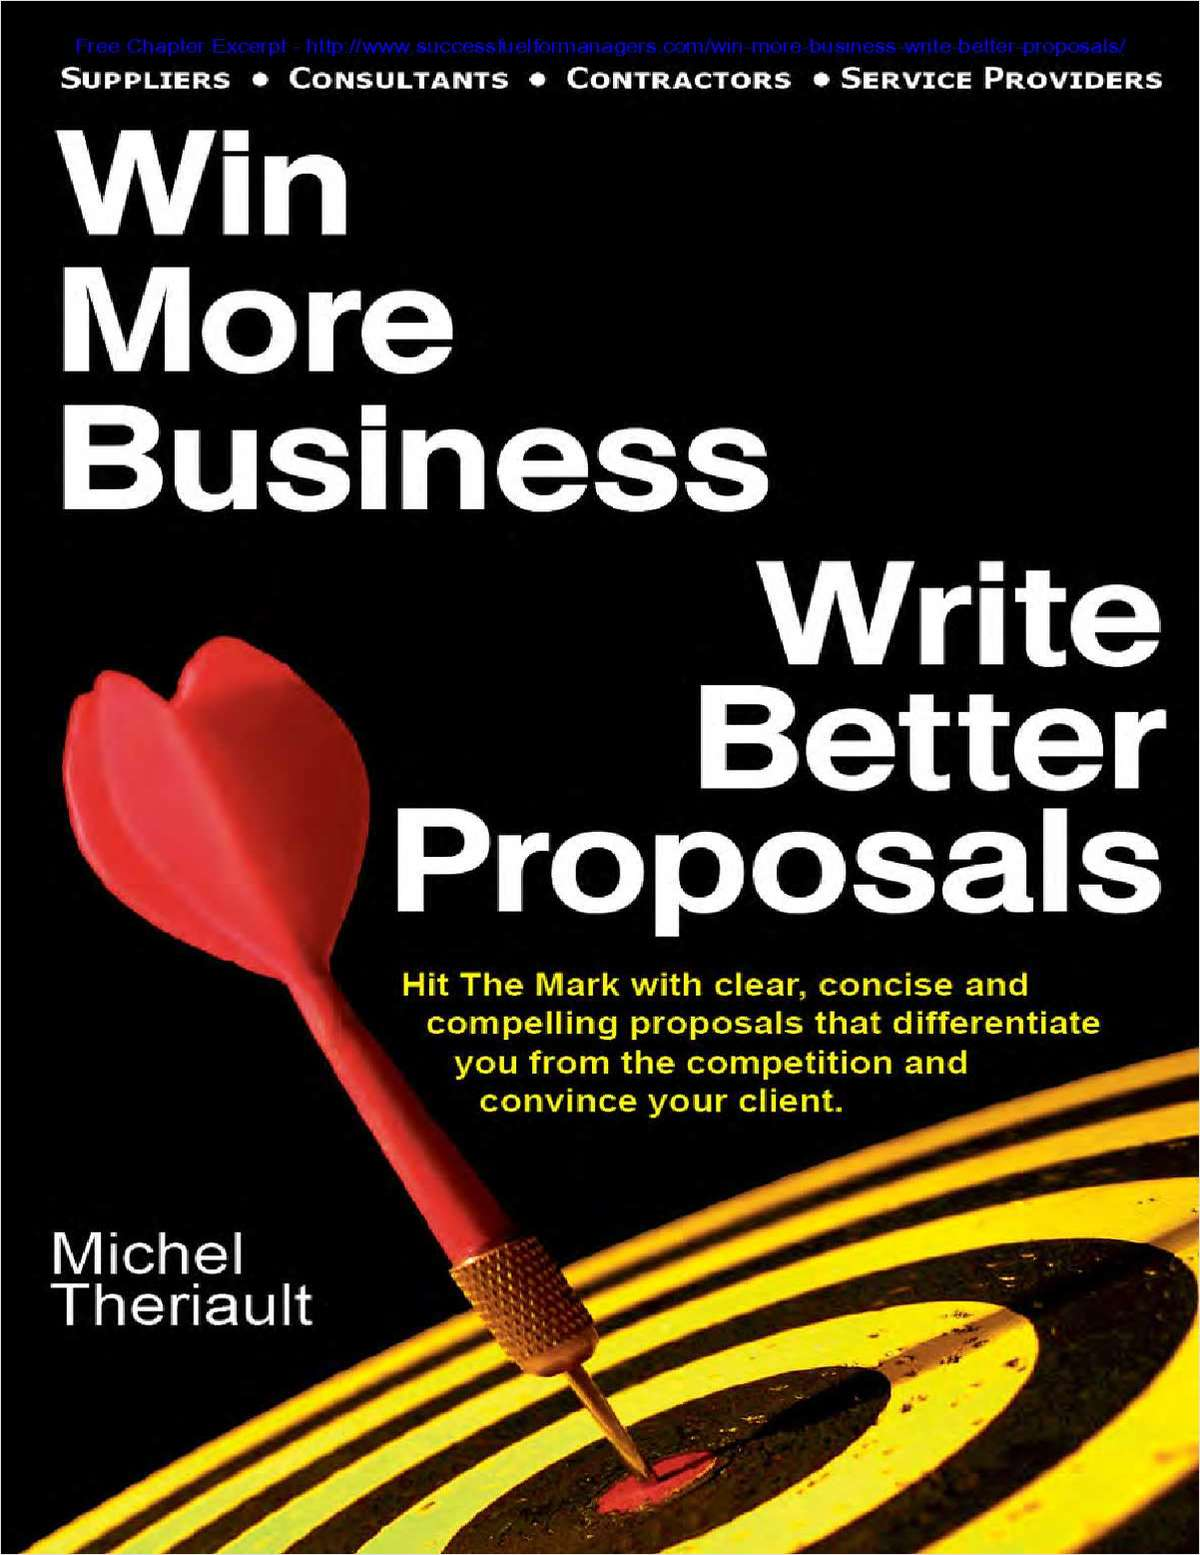 Win More Business, Write Better Proposals